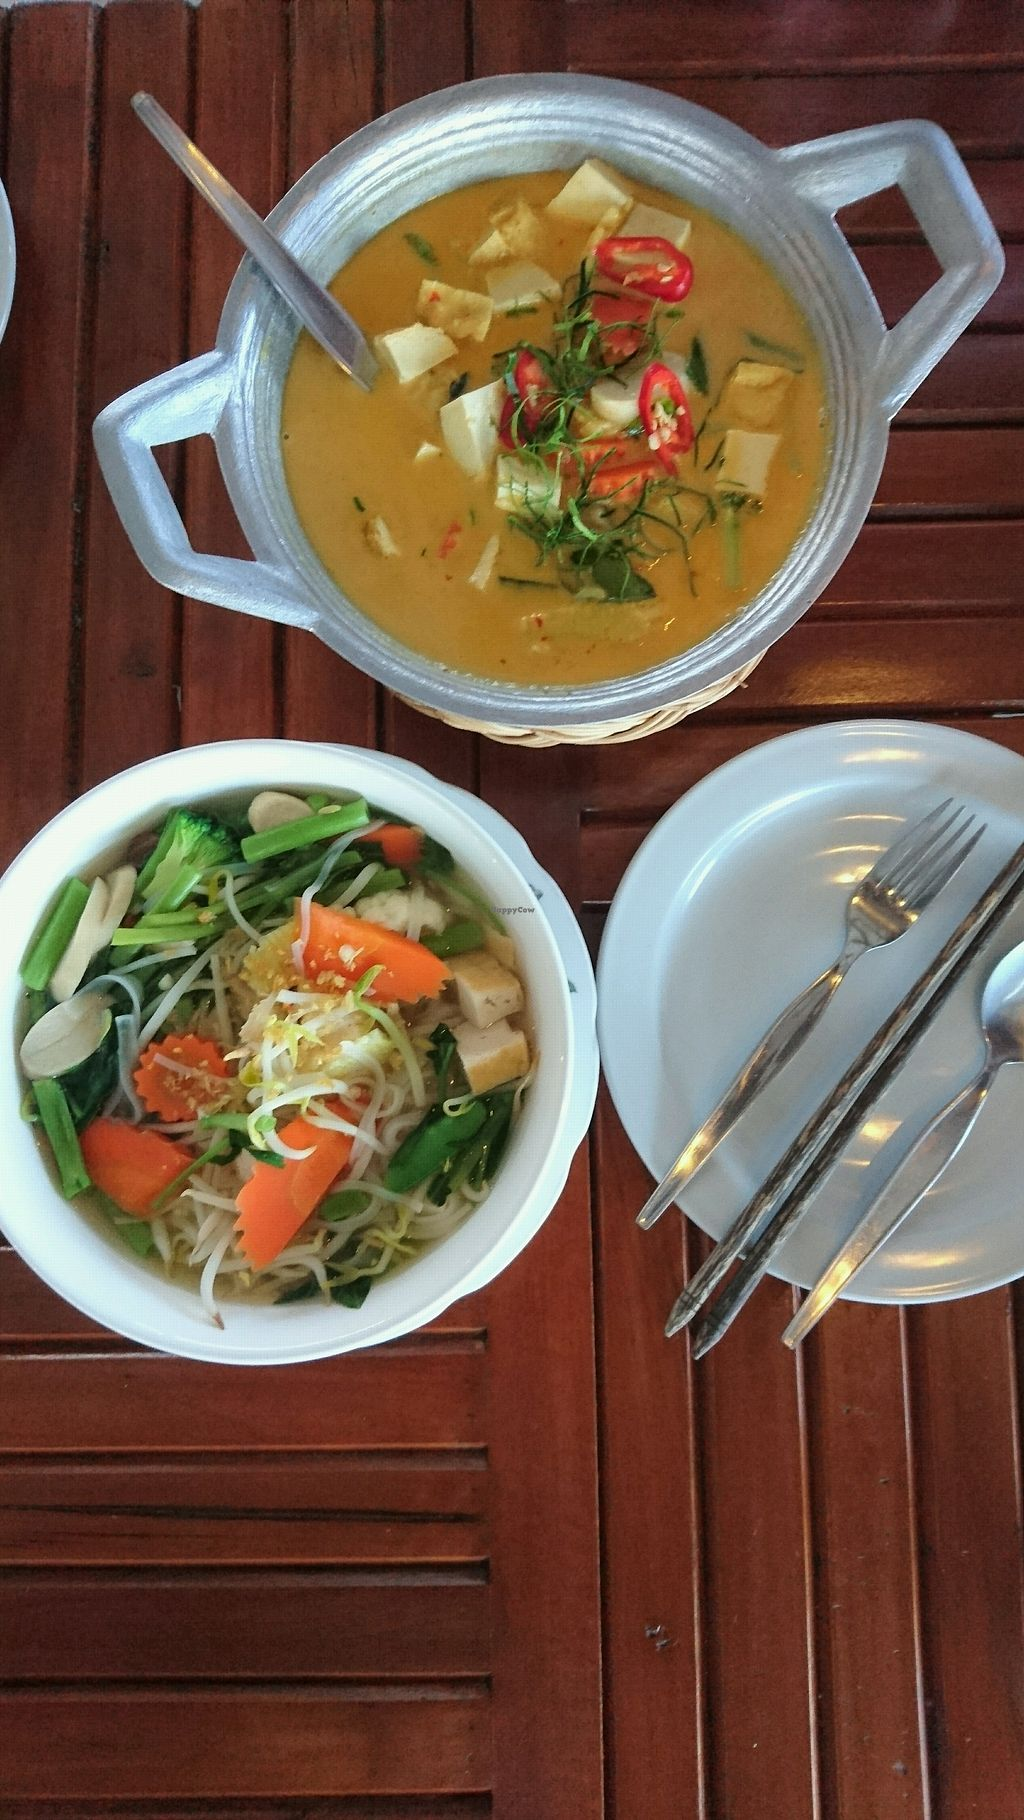 """Photo of Pinto Restaurant  by <a href=""""/members/profile/AnthonyMTL"""">AnthonyMTL</a> <br/>Vegan Clear Soup with Rice noodles and Vegetables + Vegan Panang Curry with tofu <br/> December 17, 2017  - <a href='/contact/abuse/image/107357/336315'>Report</a>"""